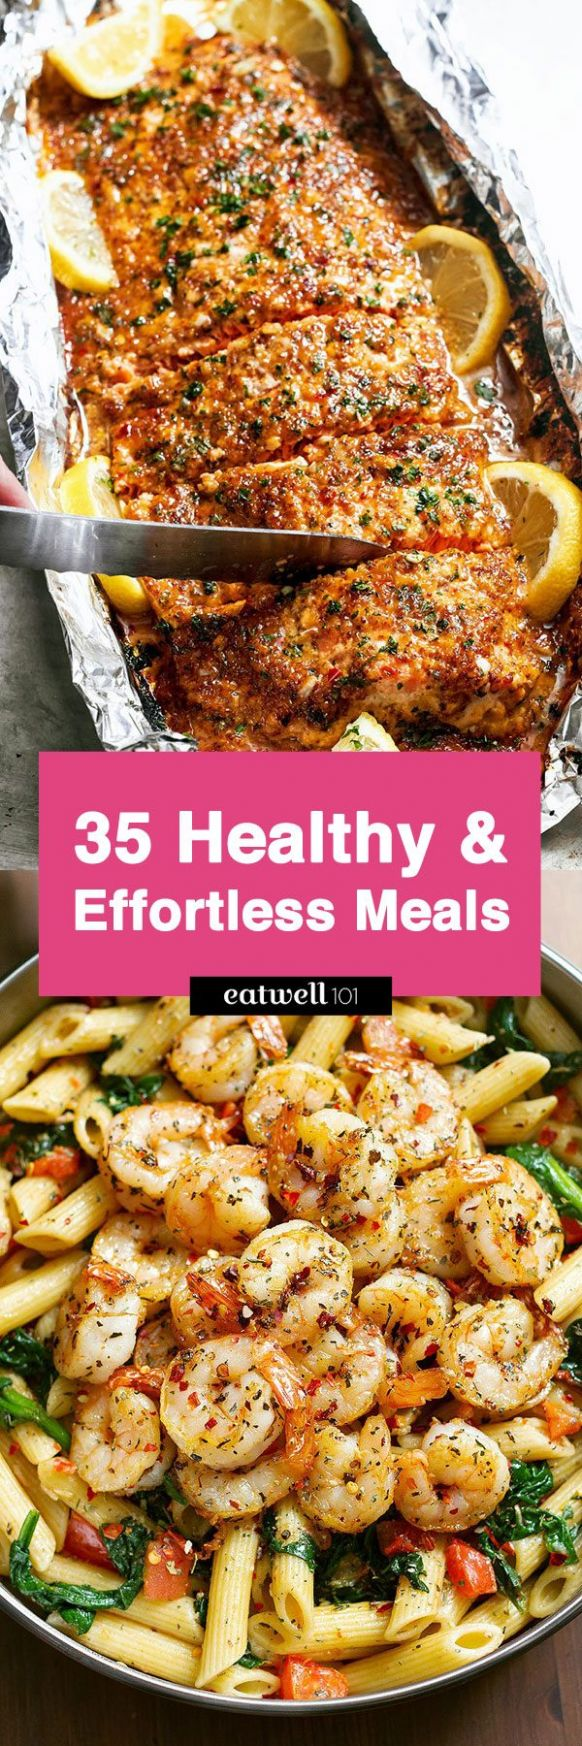 Easy Healthy Dinner Ideas: 8 Low Effort and Healthy Dinner ...